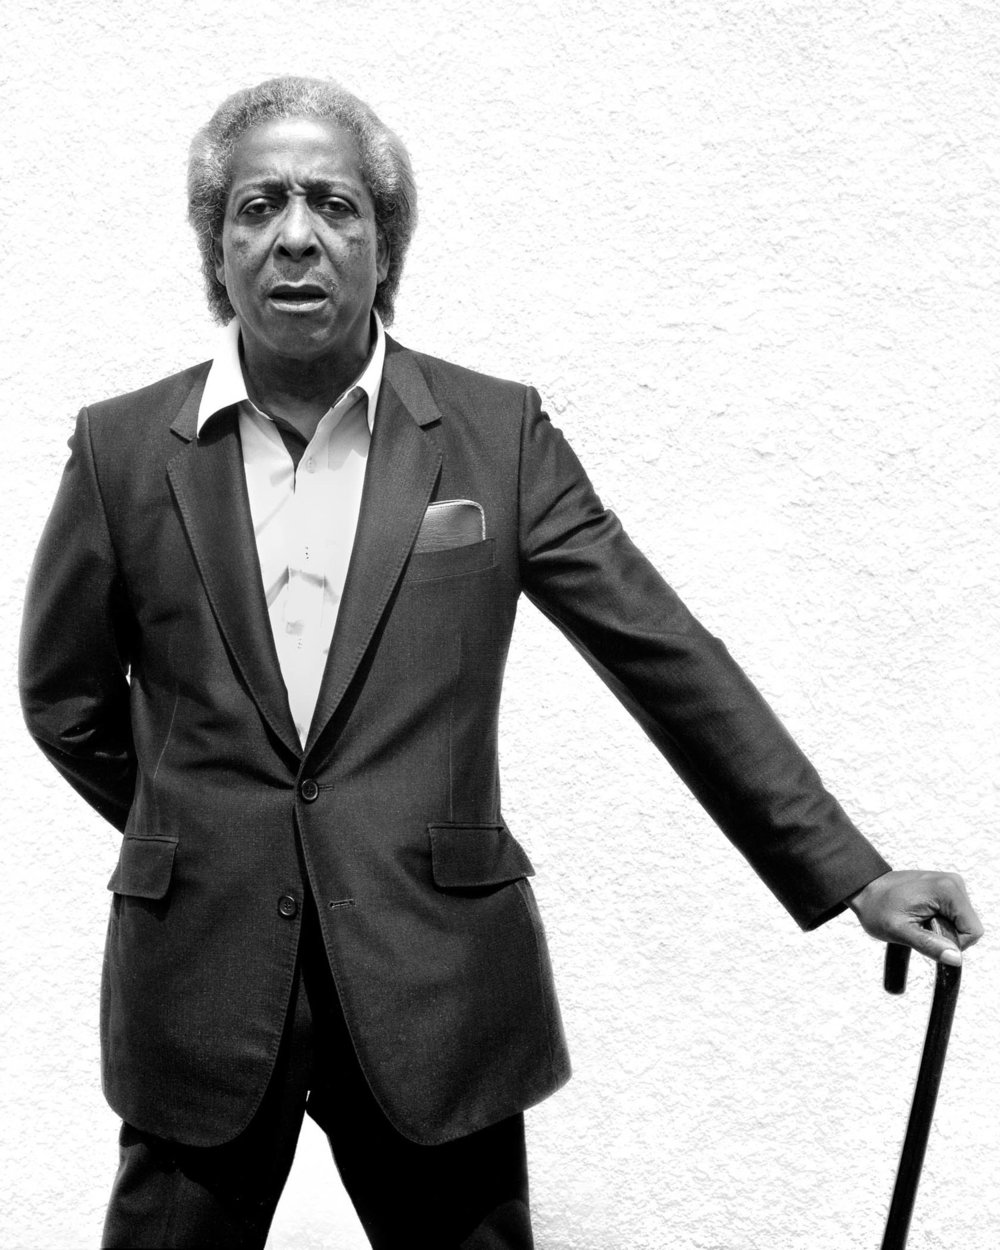 """Jeannie O'Connor, West Berkeley Senior Center portraits, """"Riley with his Cane,"""" 20 x 16 inches, silver gelatin print, 1984"""